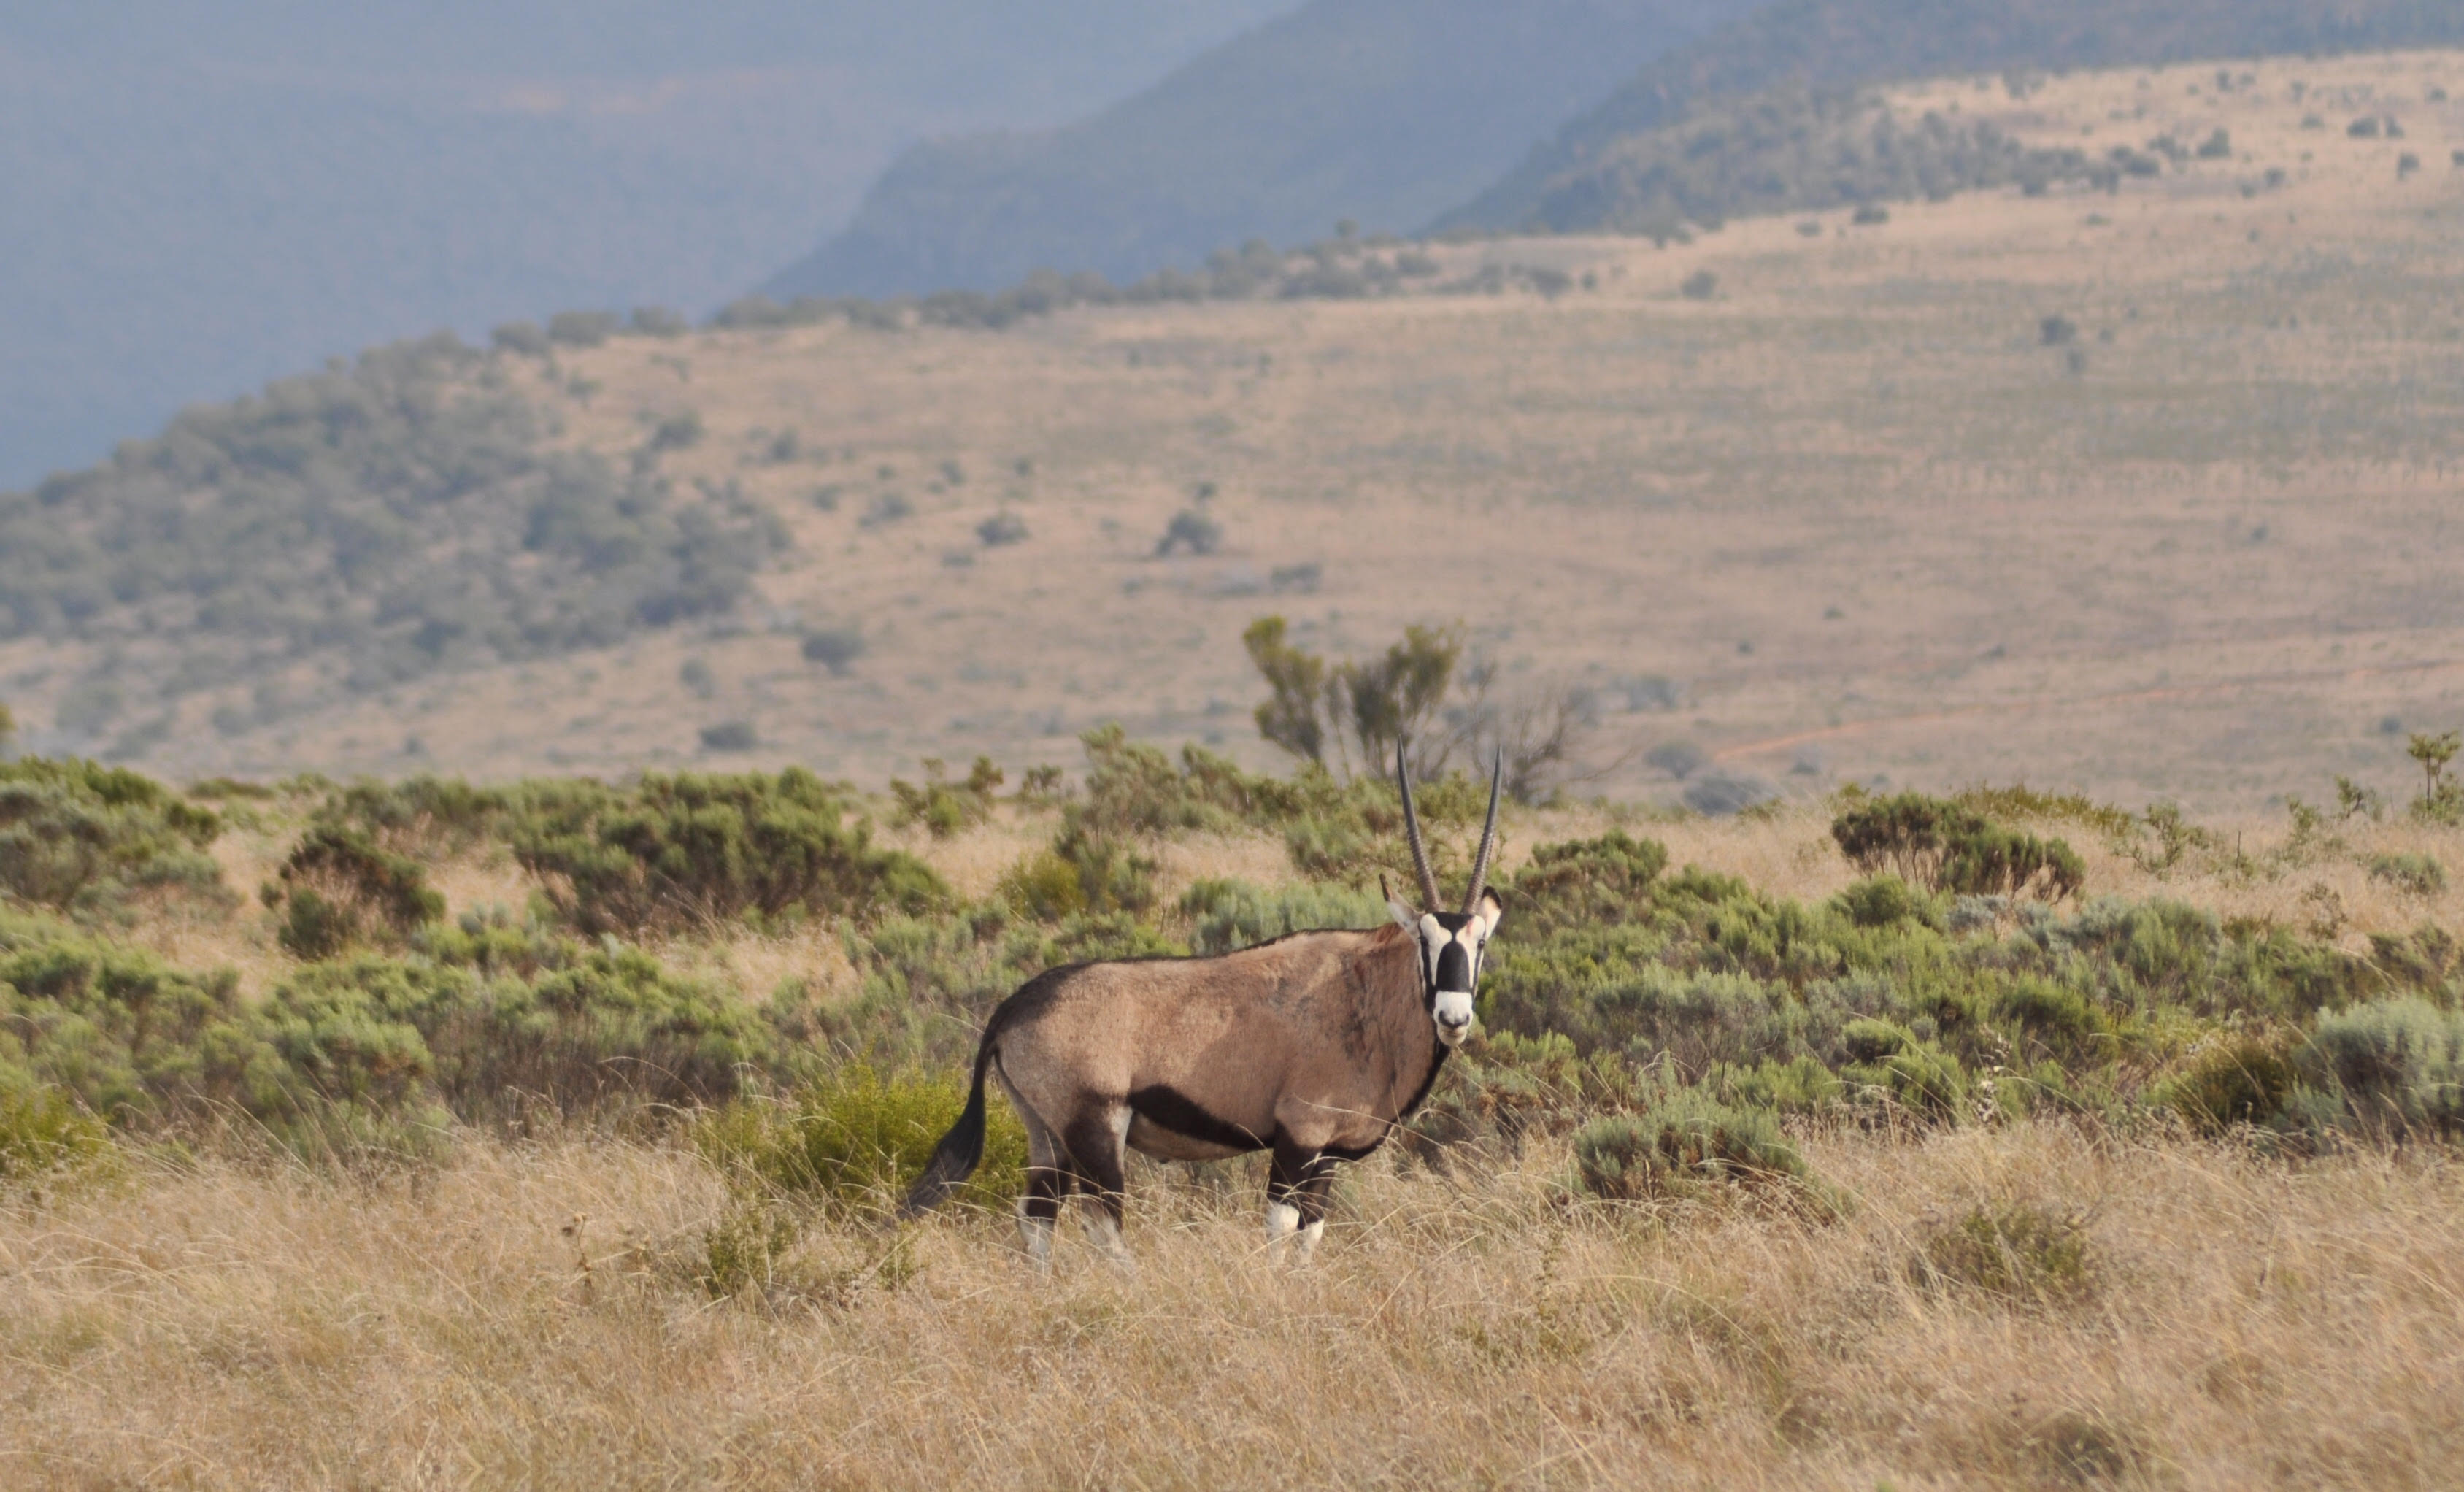 The Great Karoo is rich in wildlife. Photo by Imogene Robinson